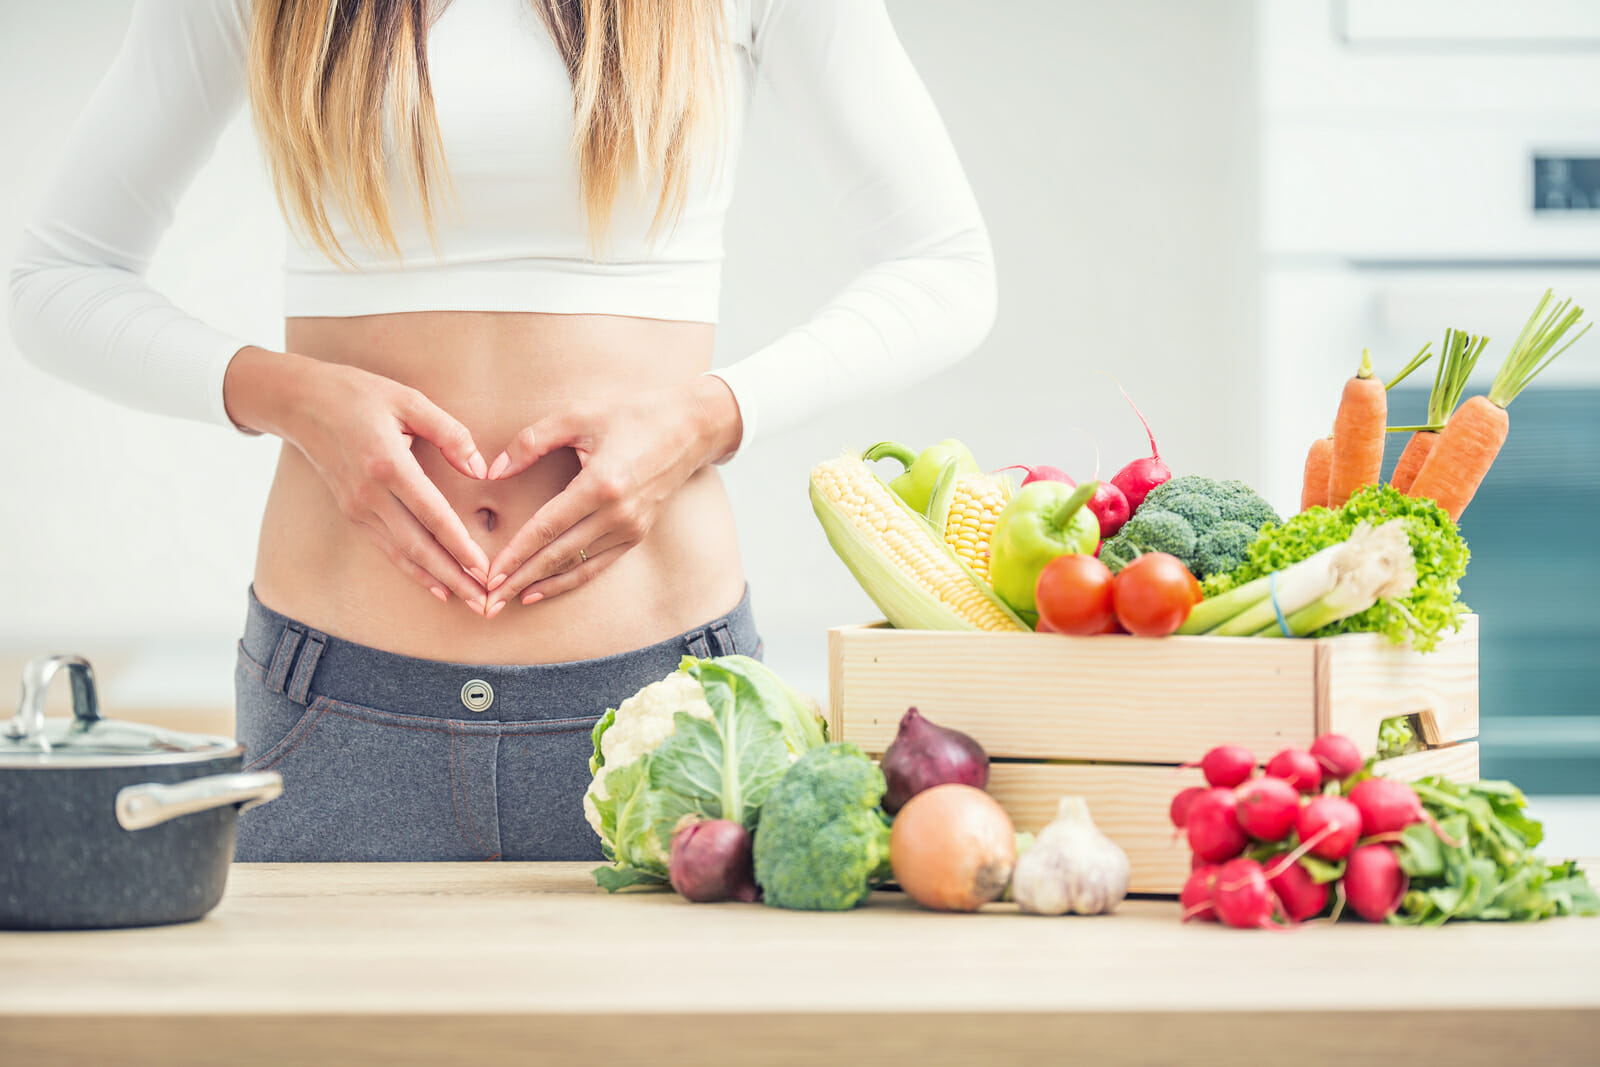 A little loving self-care will enable you to spring-clean your body from the inside out and get a head start on summer by reducing belly bloat and IBS-D symptoms.